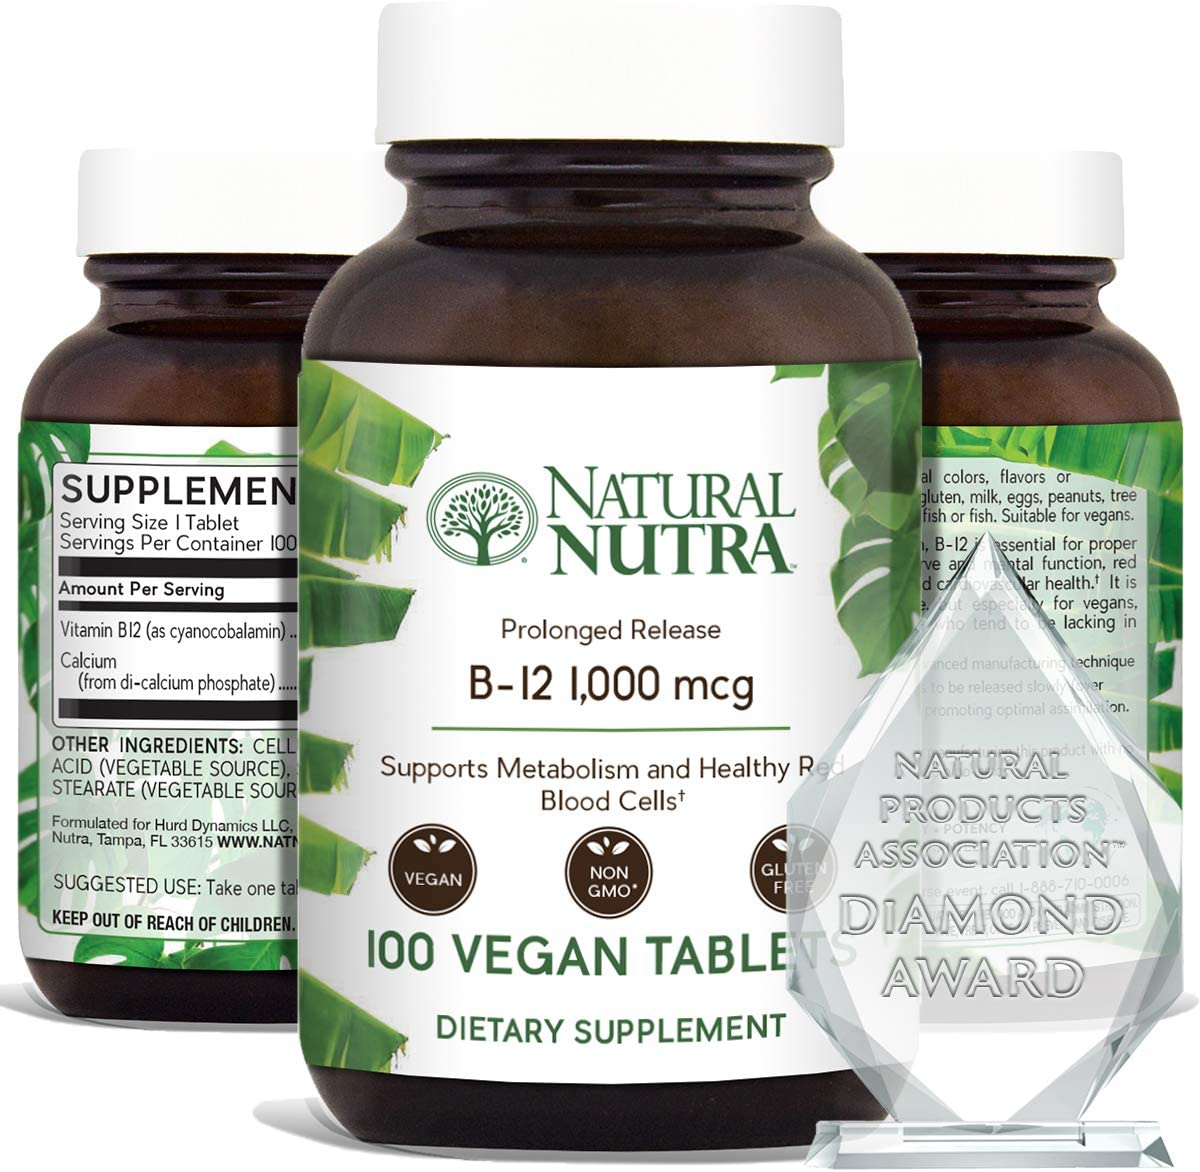 Amazon.com: Natural Nutra Vegan Vitamin B12 1000 mcg,Cobalamin B 12  Supplement,Calcium Phosphate,Healthy Brain, Red Blood Cells,Supplements for  Optimal Absorption,Non GMO,Gluten Free,Sugar 100 Tablets: Health & Personal  Care